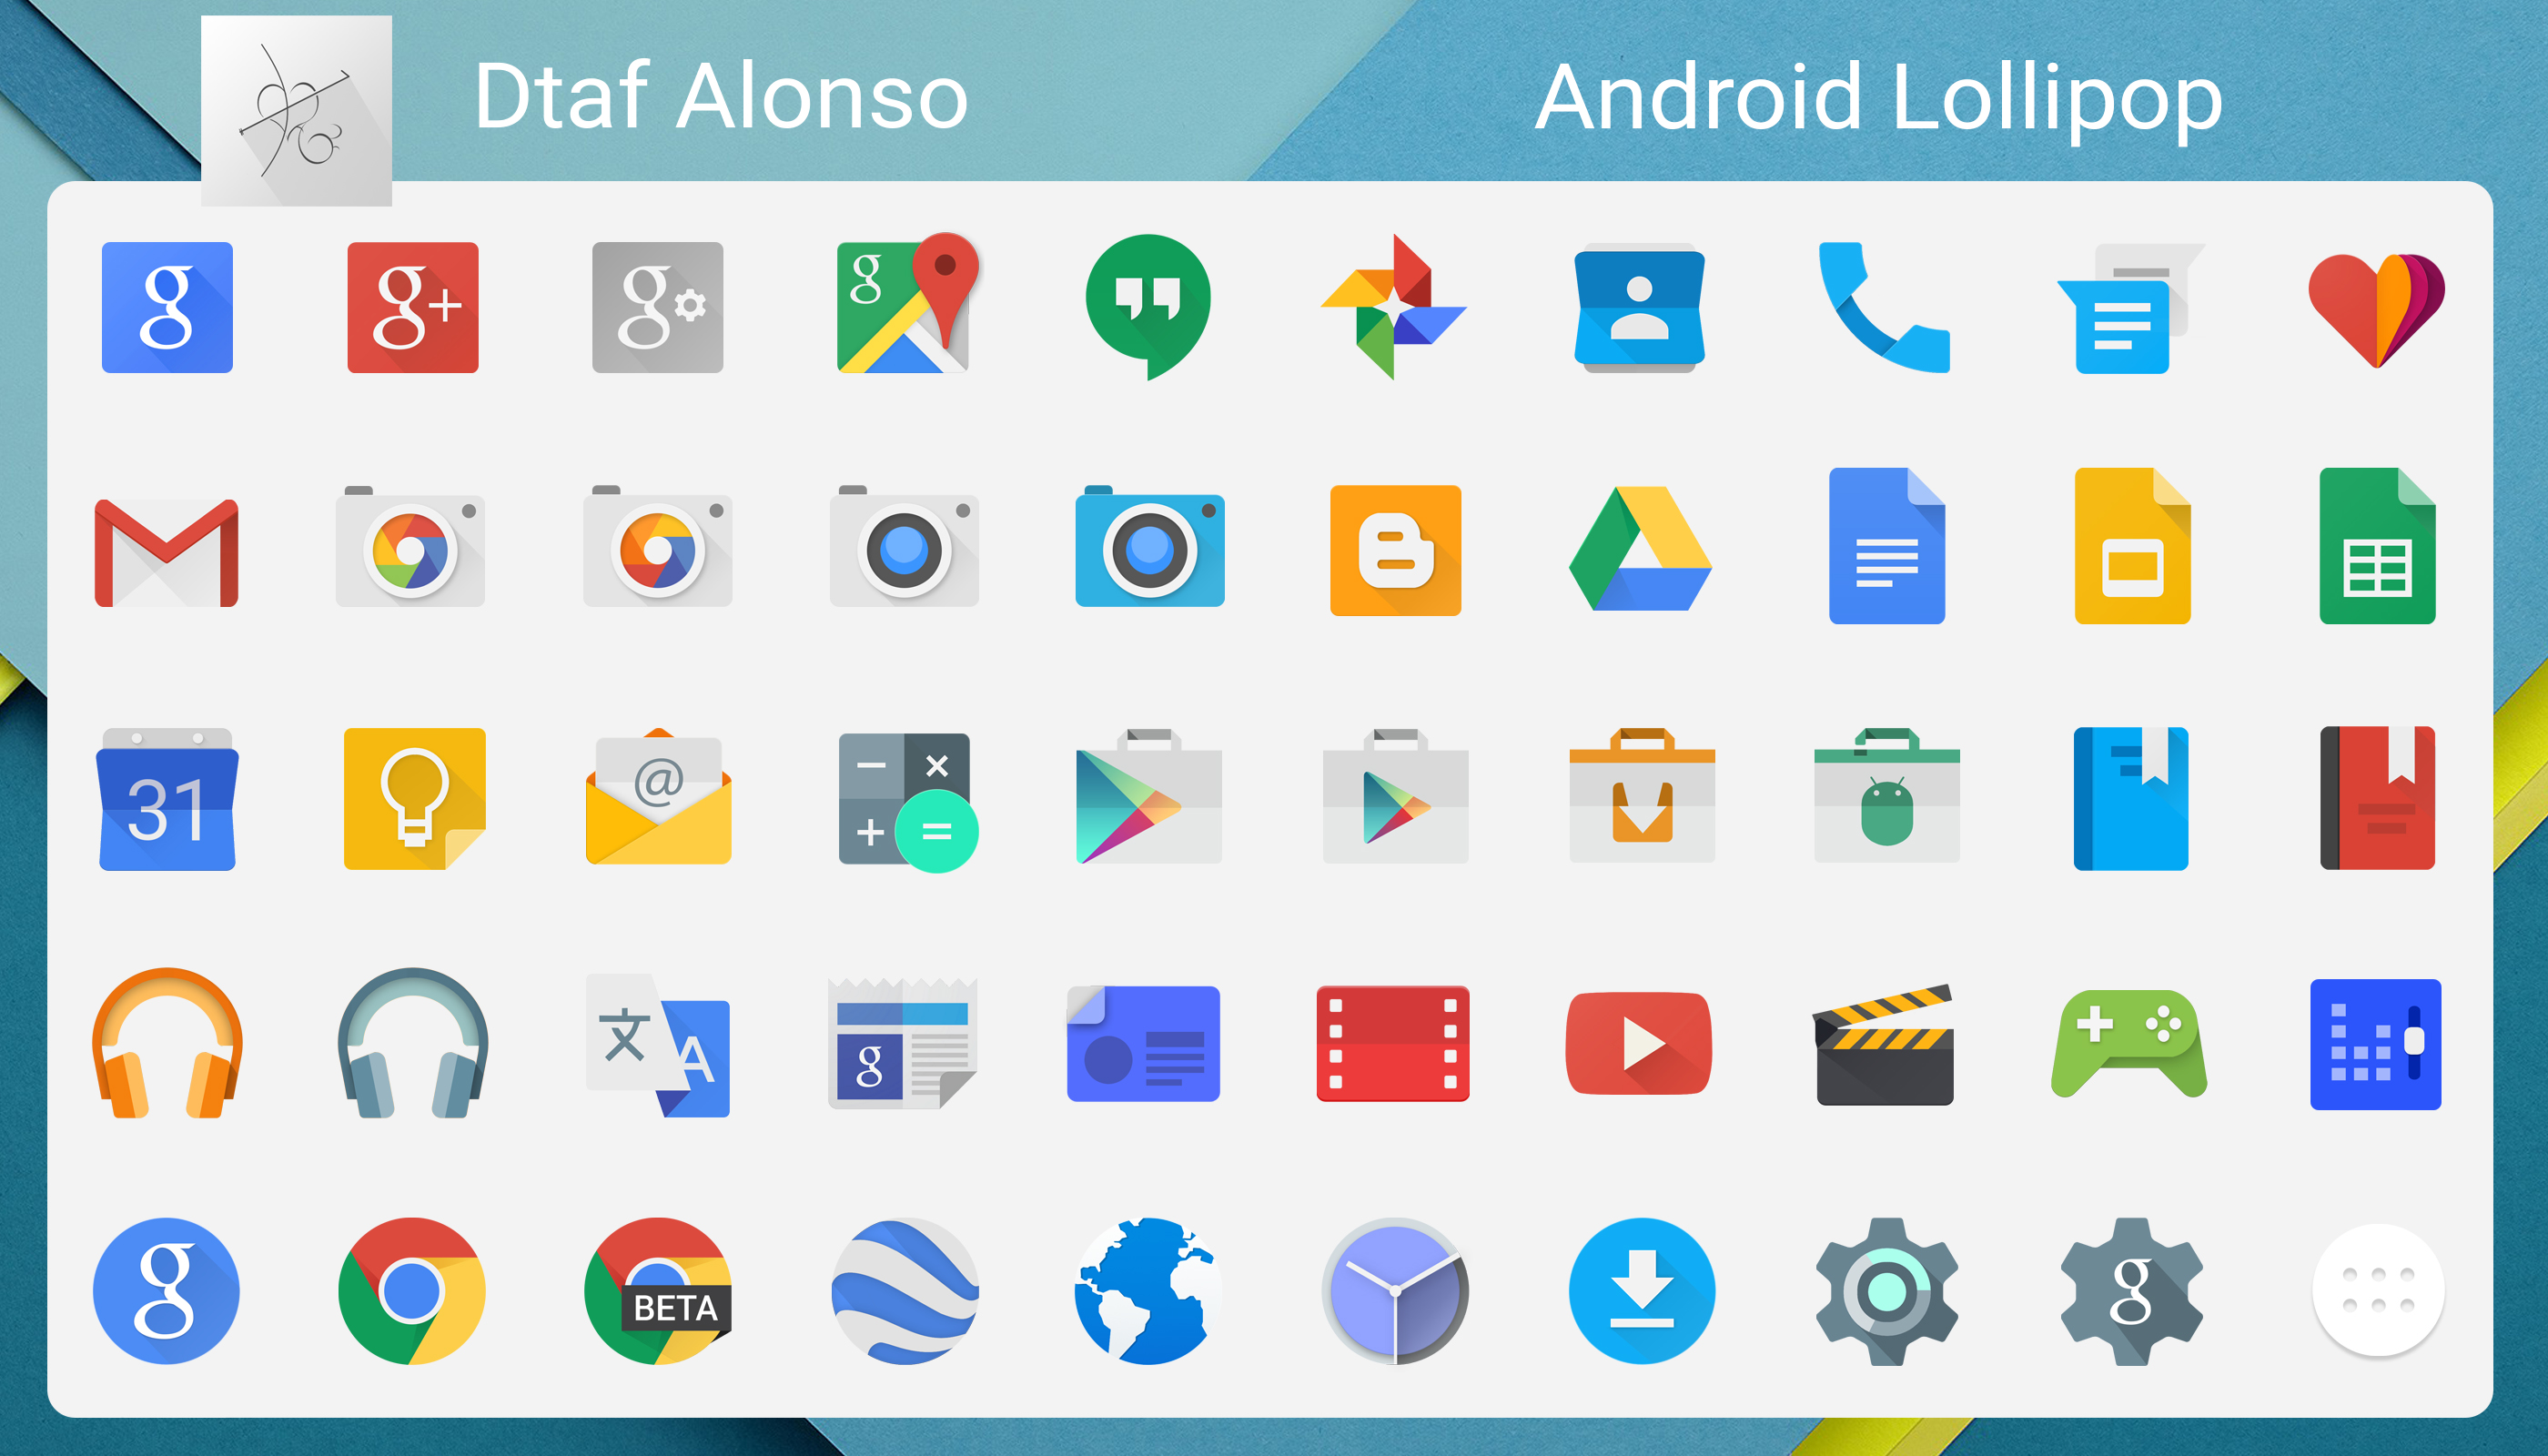 15 Android Lollipop Icons Dark Background Images